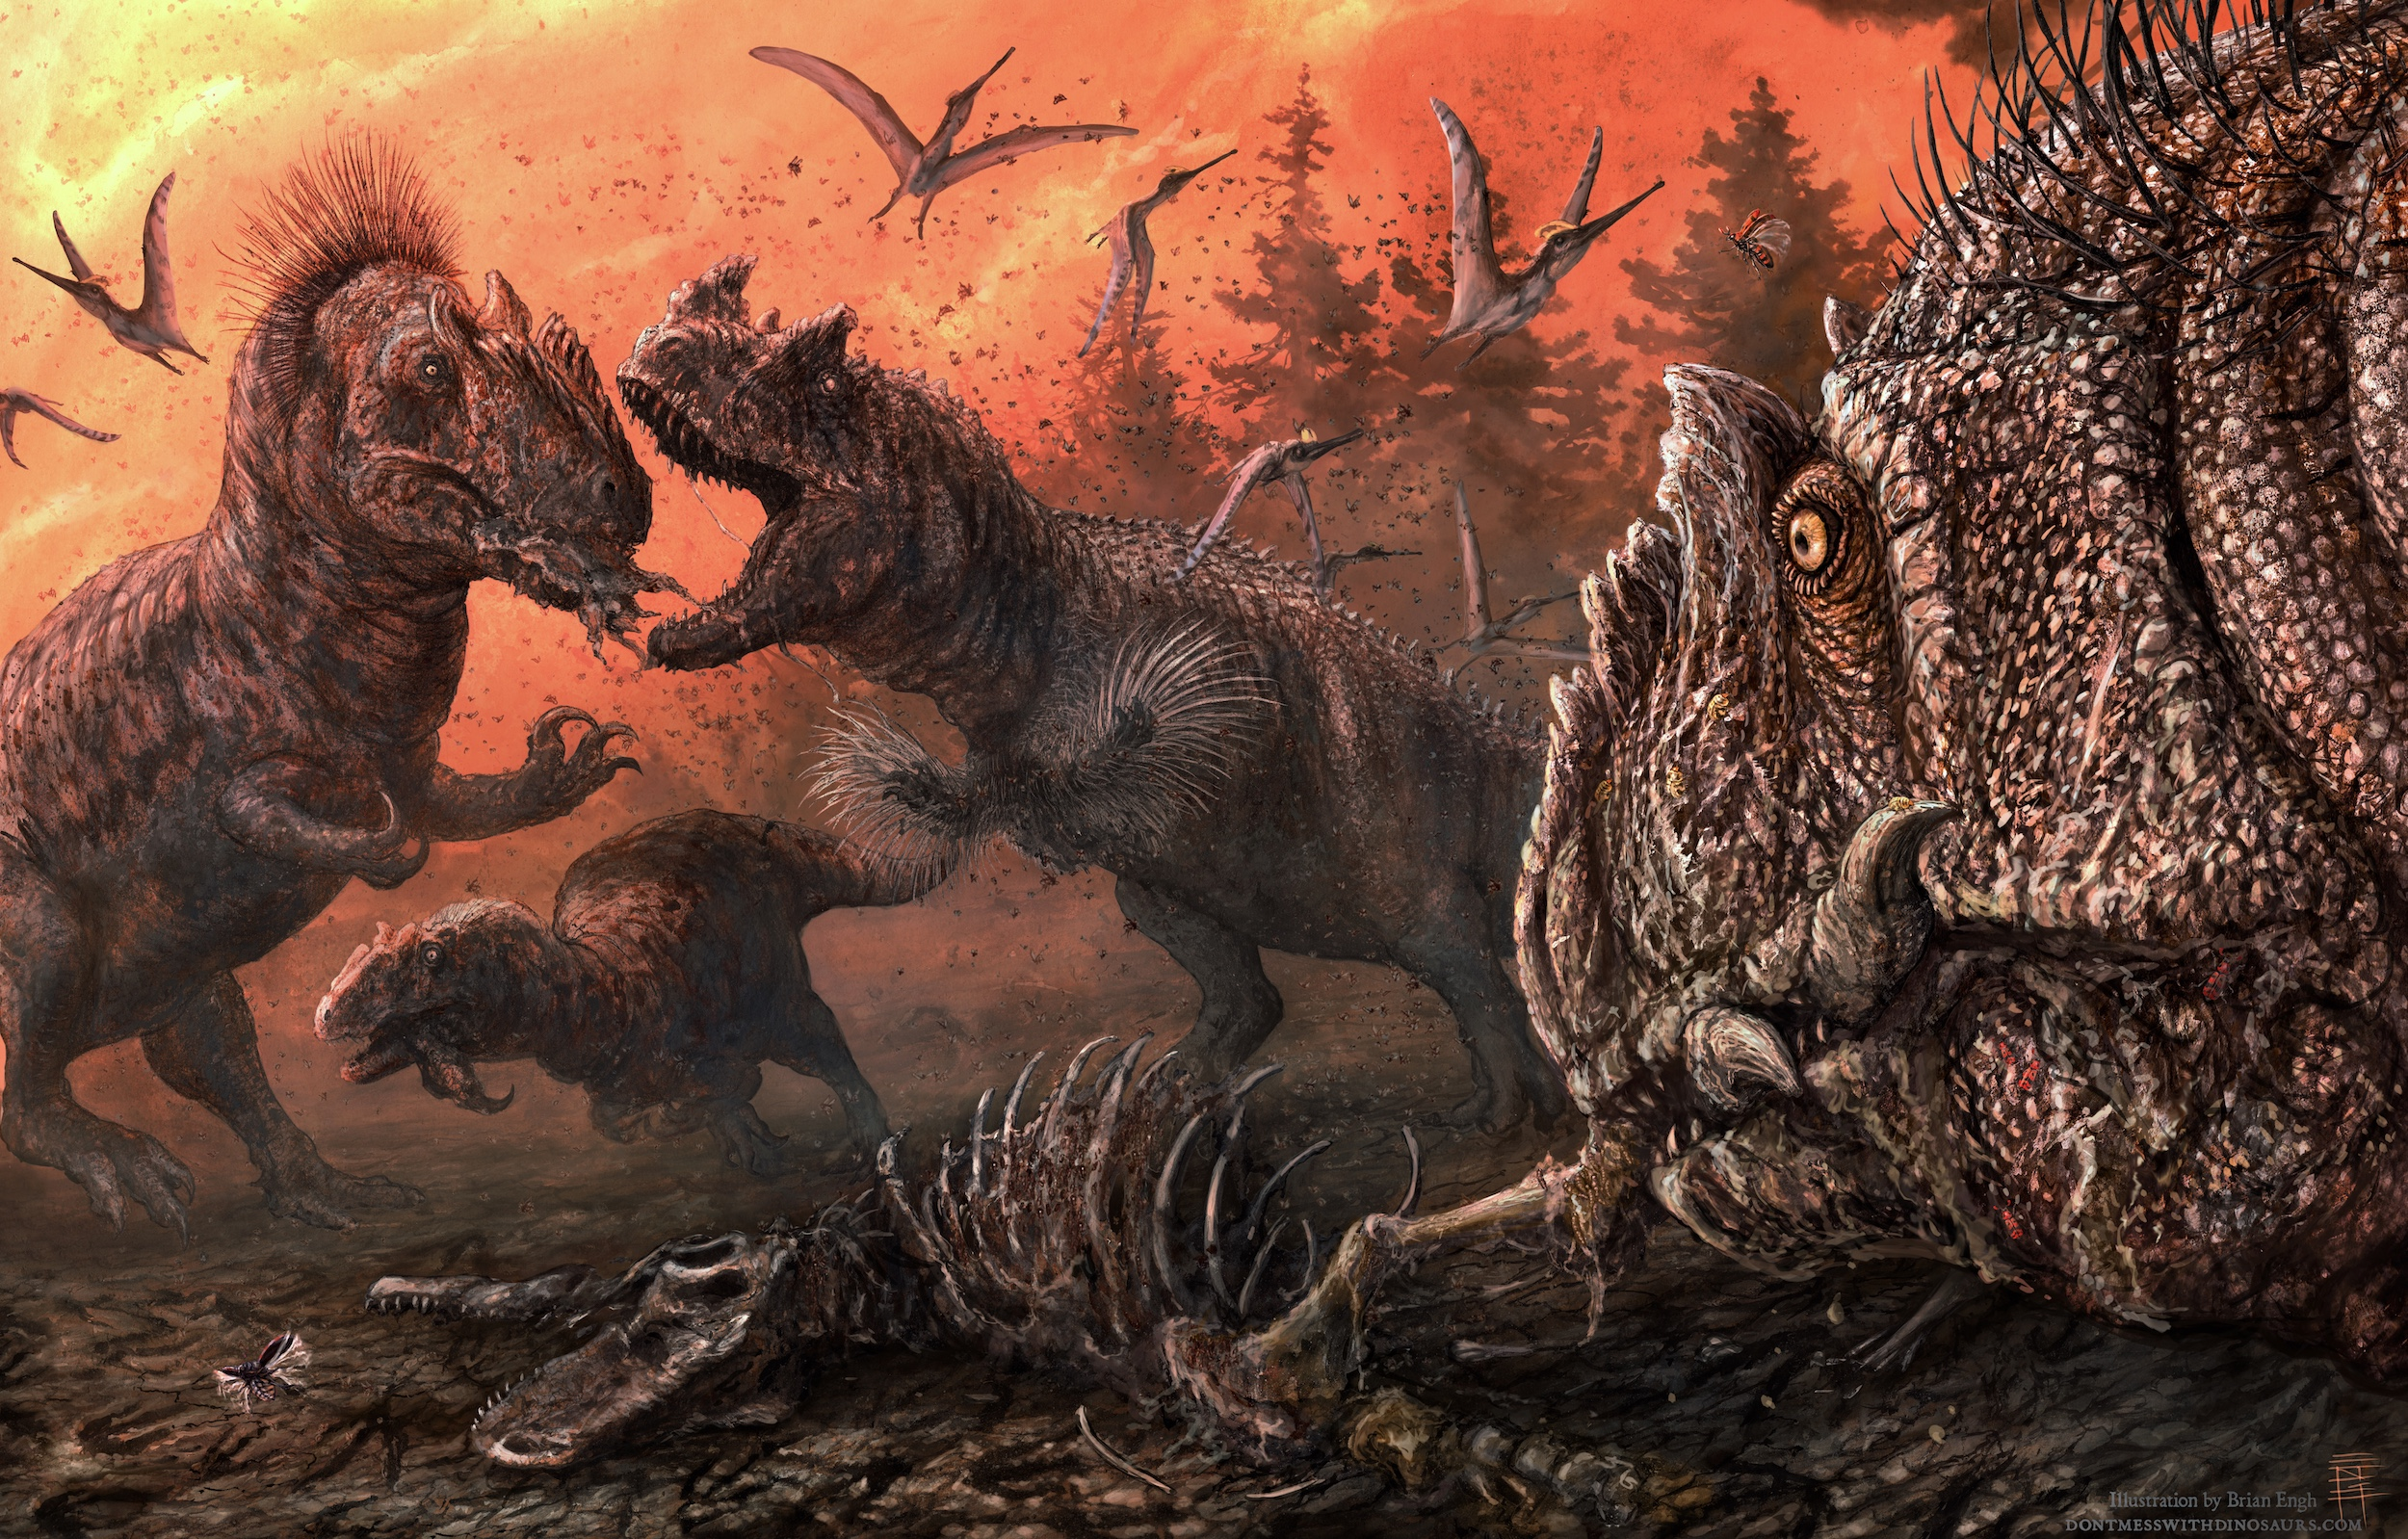 8 times nature was totally metal in 2020 thumbnail